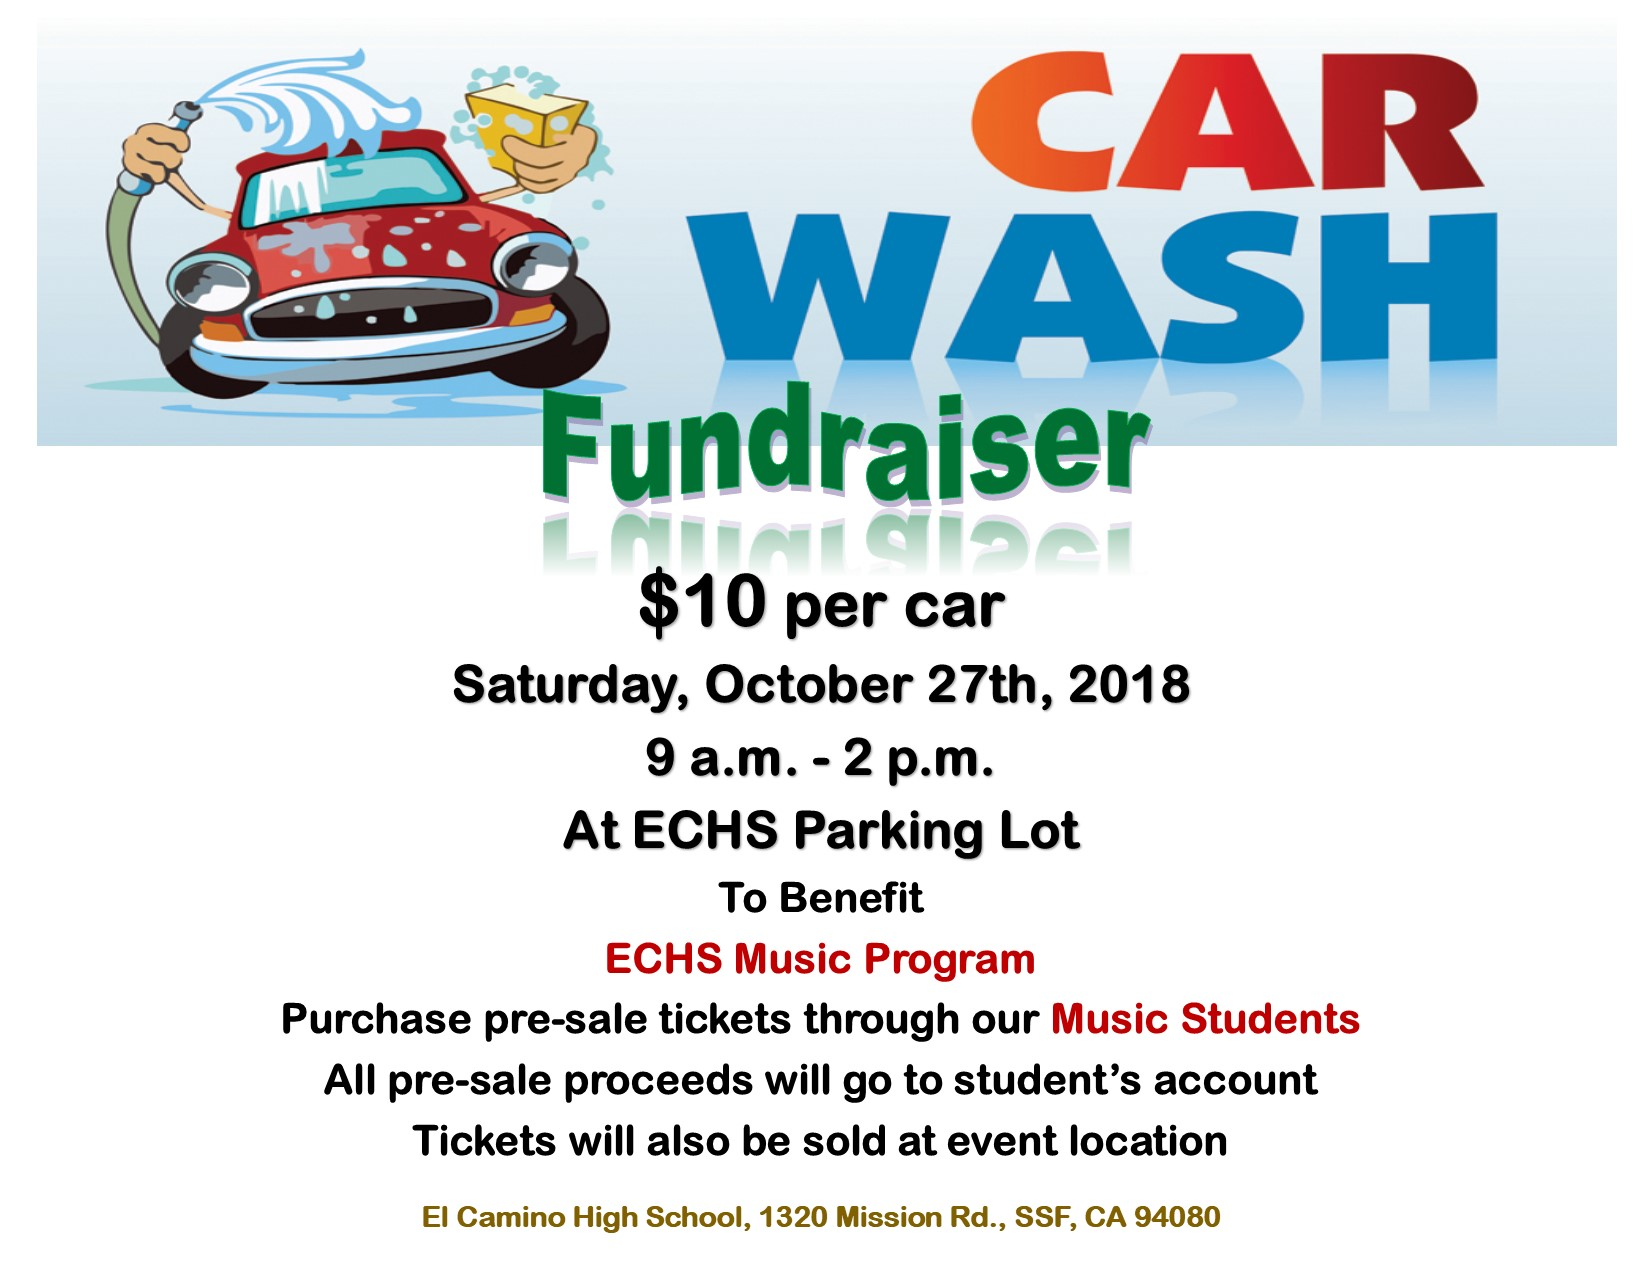 Come Support The Car Wash Oct 27th To Benefit El Camino High School